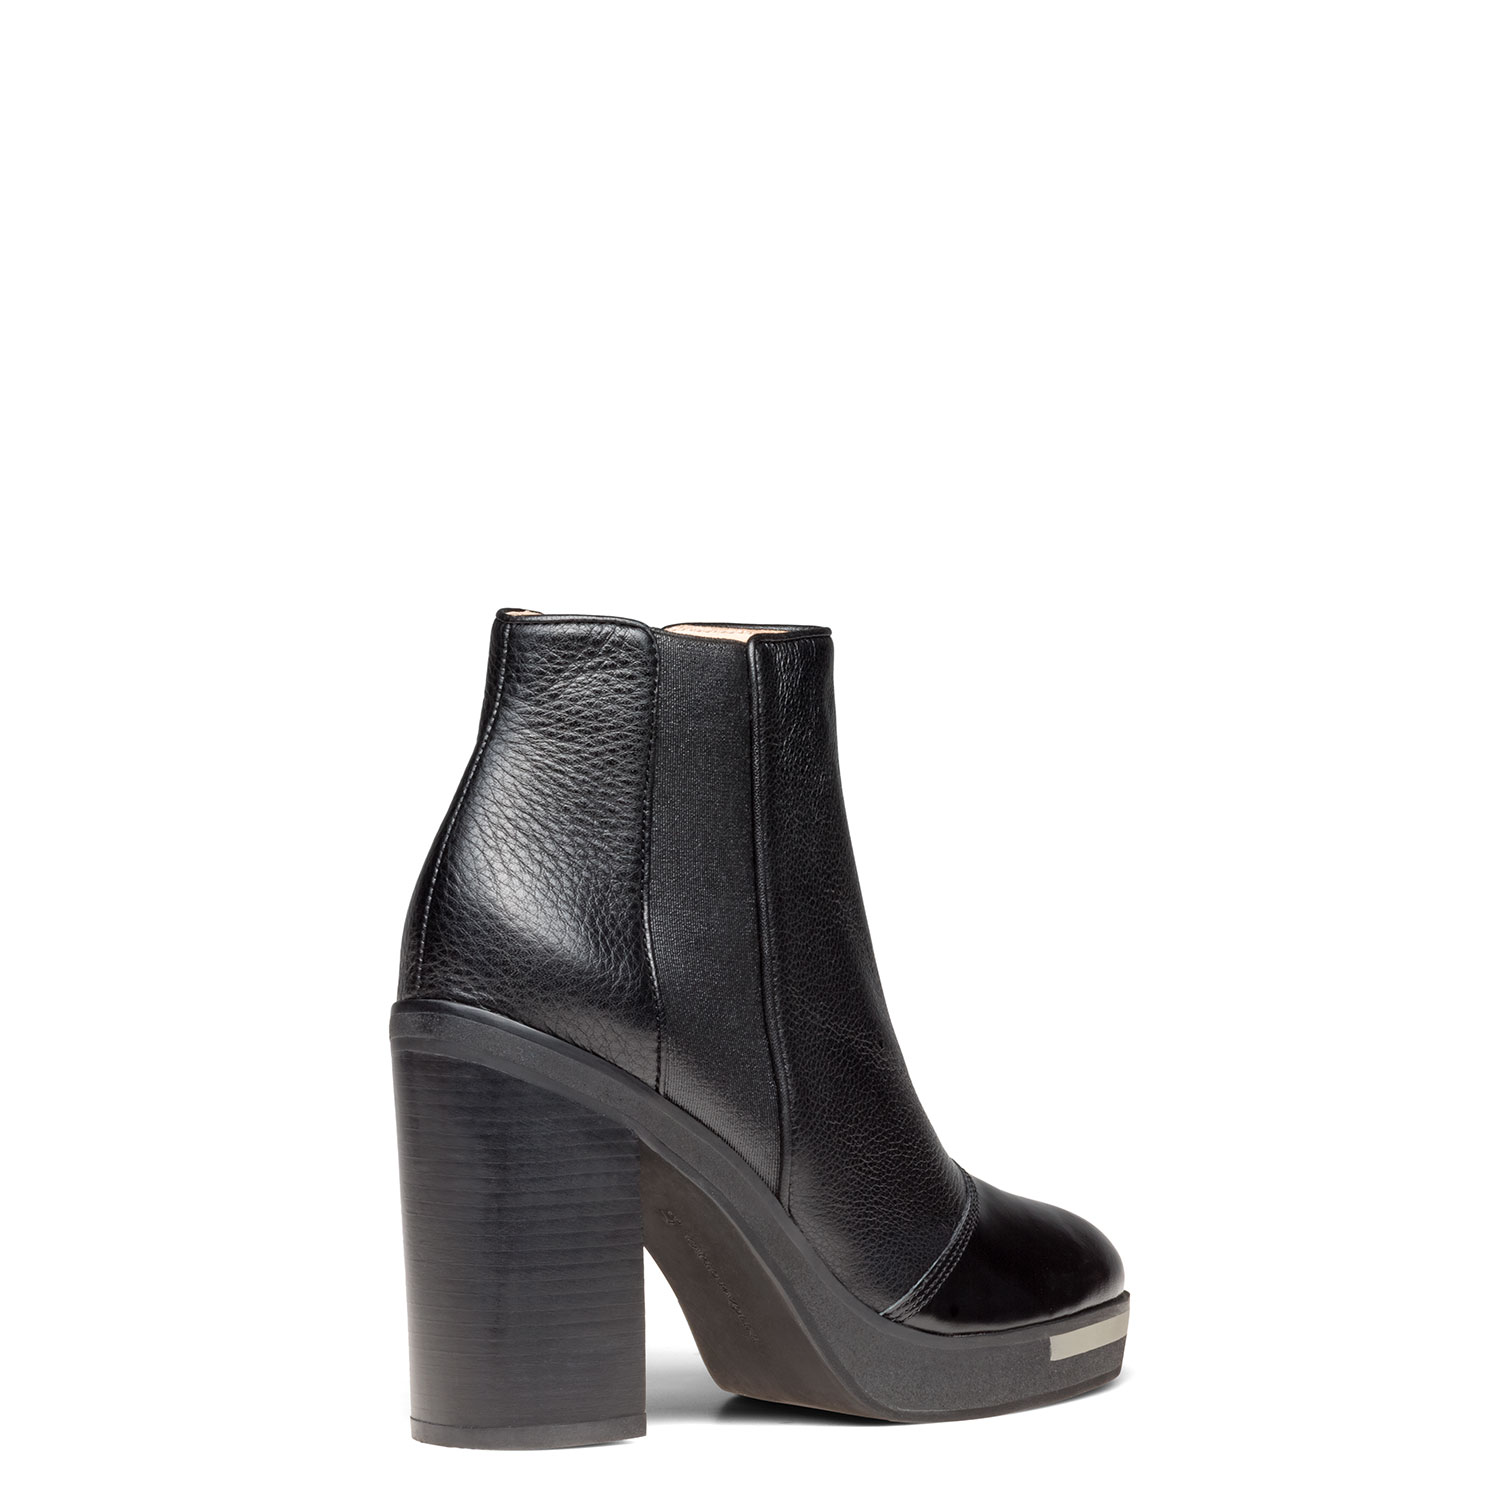 Women's ankle boots PAZOLINI FG-MCR3-1